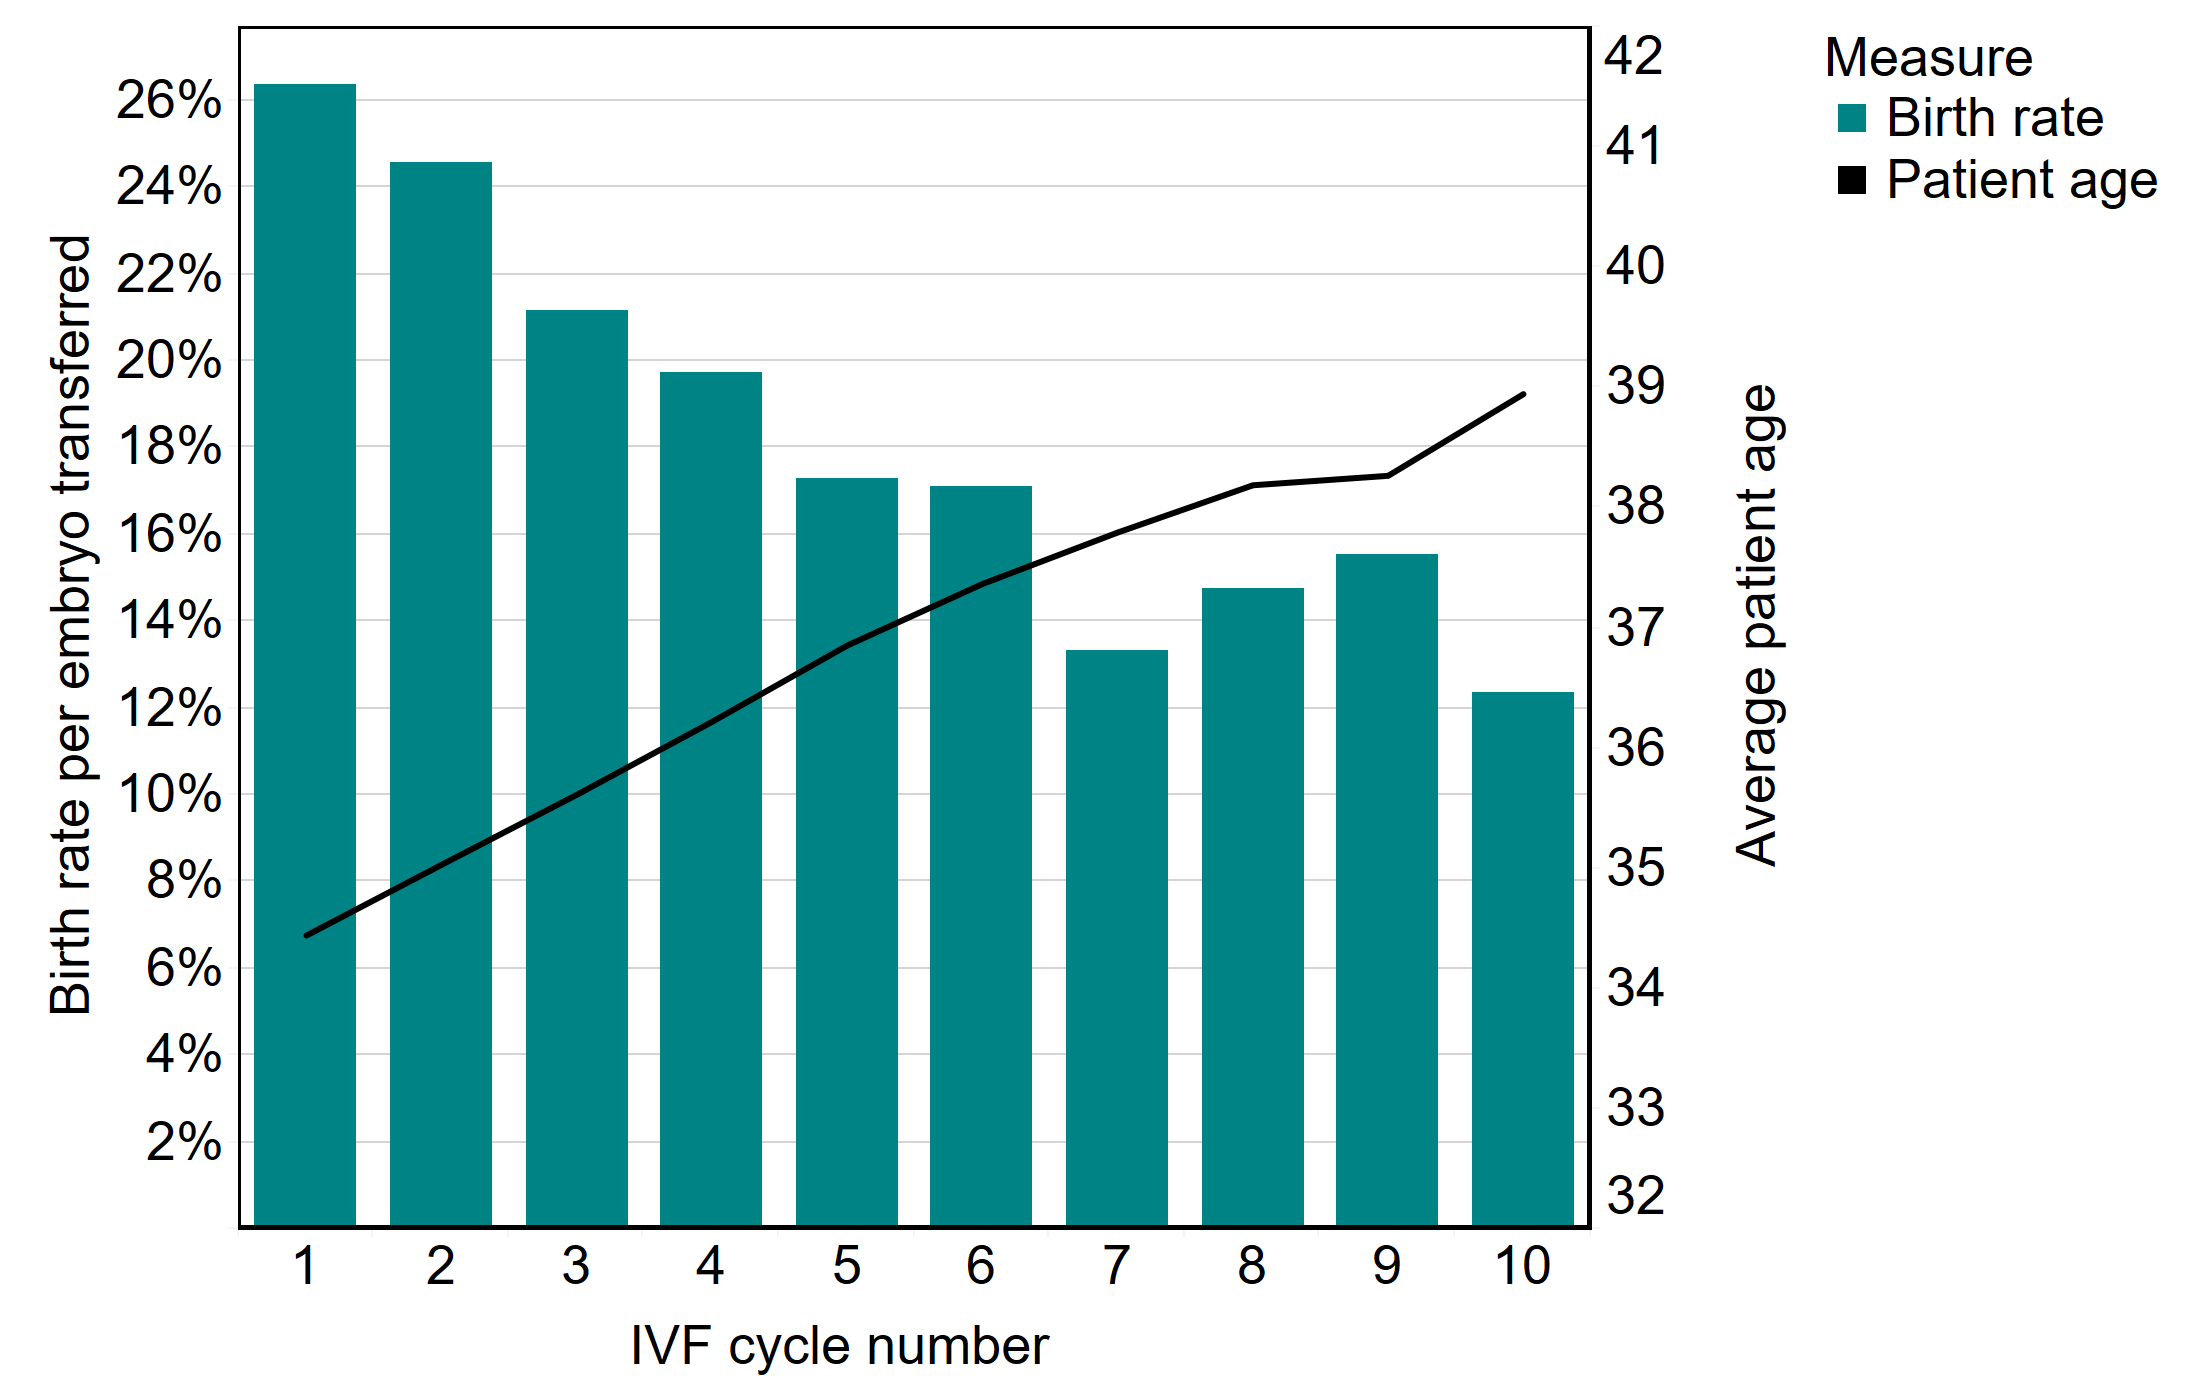 This combination chart shows the live birth rates per embryo transferred by IVF cycle number in 2018 in bars with average patient age overlayed in a line. The graph shows that the live birth rate per embryo transferred decreases by IVF cycle number, while the average patient age increases. The first three IVF cycles have a live birth rate above 20% per embryo transferred and it slowly drops as cycle number increases to about 14% for patients on their 10th IVF cycle. The average age for patients increases from just below 35 years of age on the first IVF cycle to almost 39 on the 10th cycle.